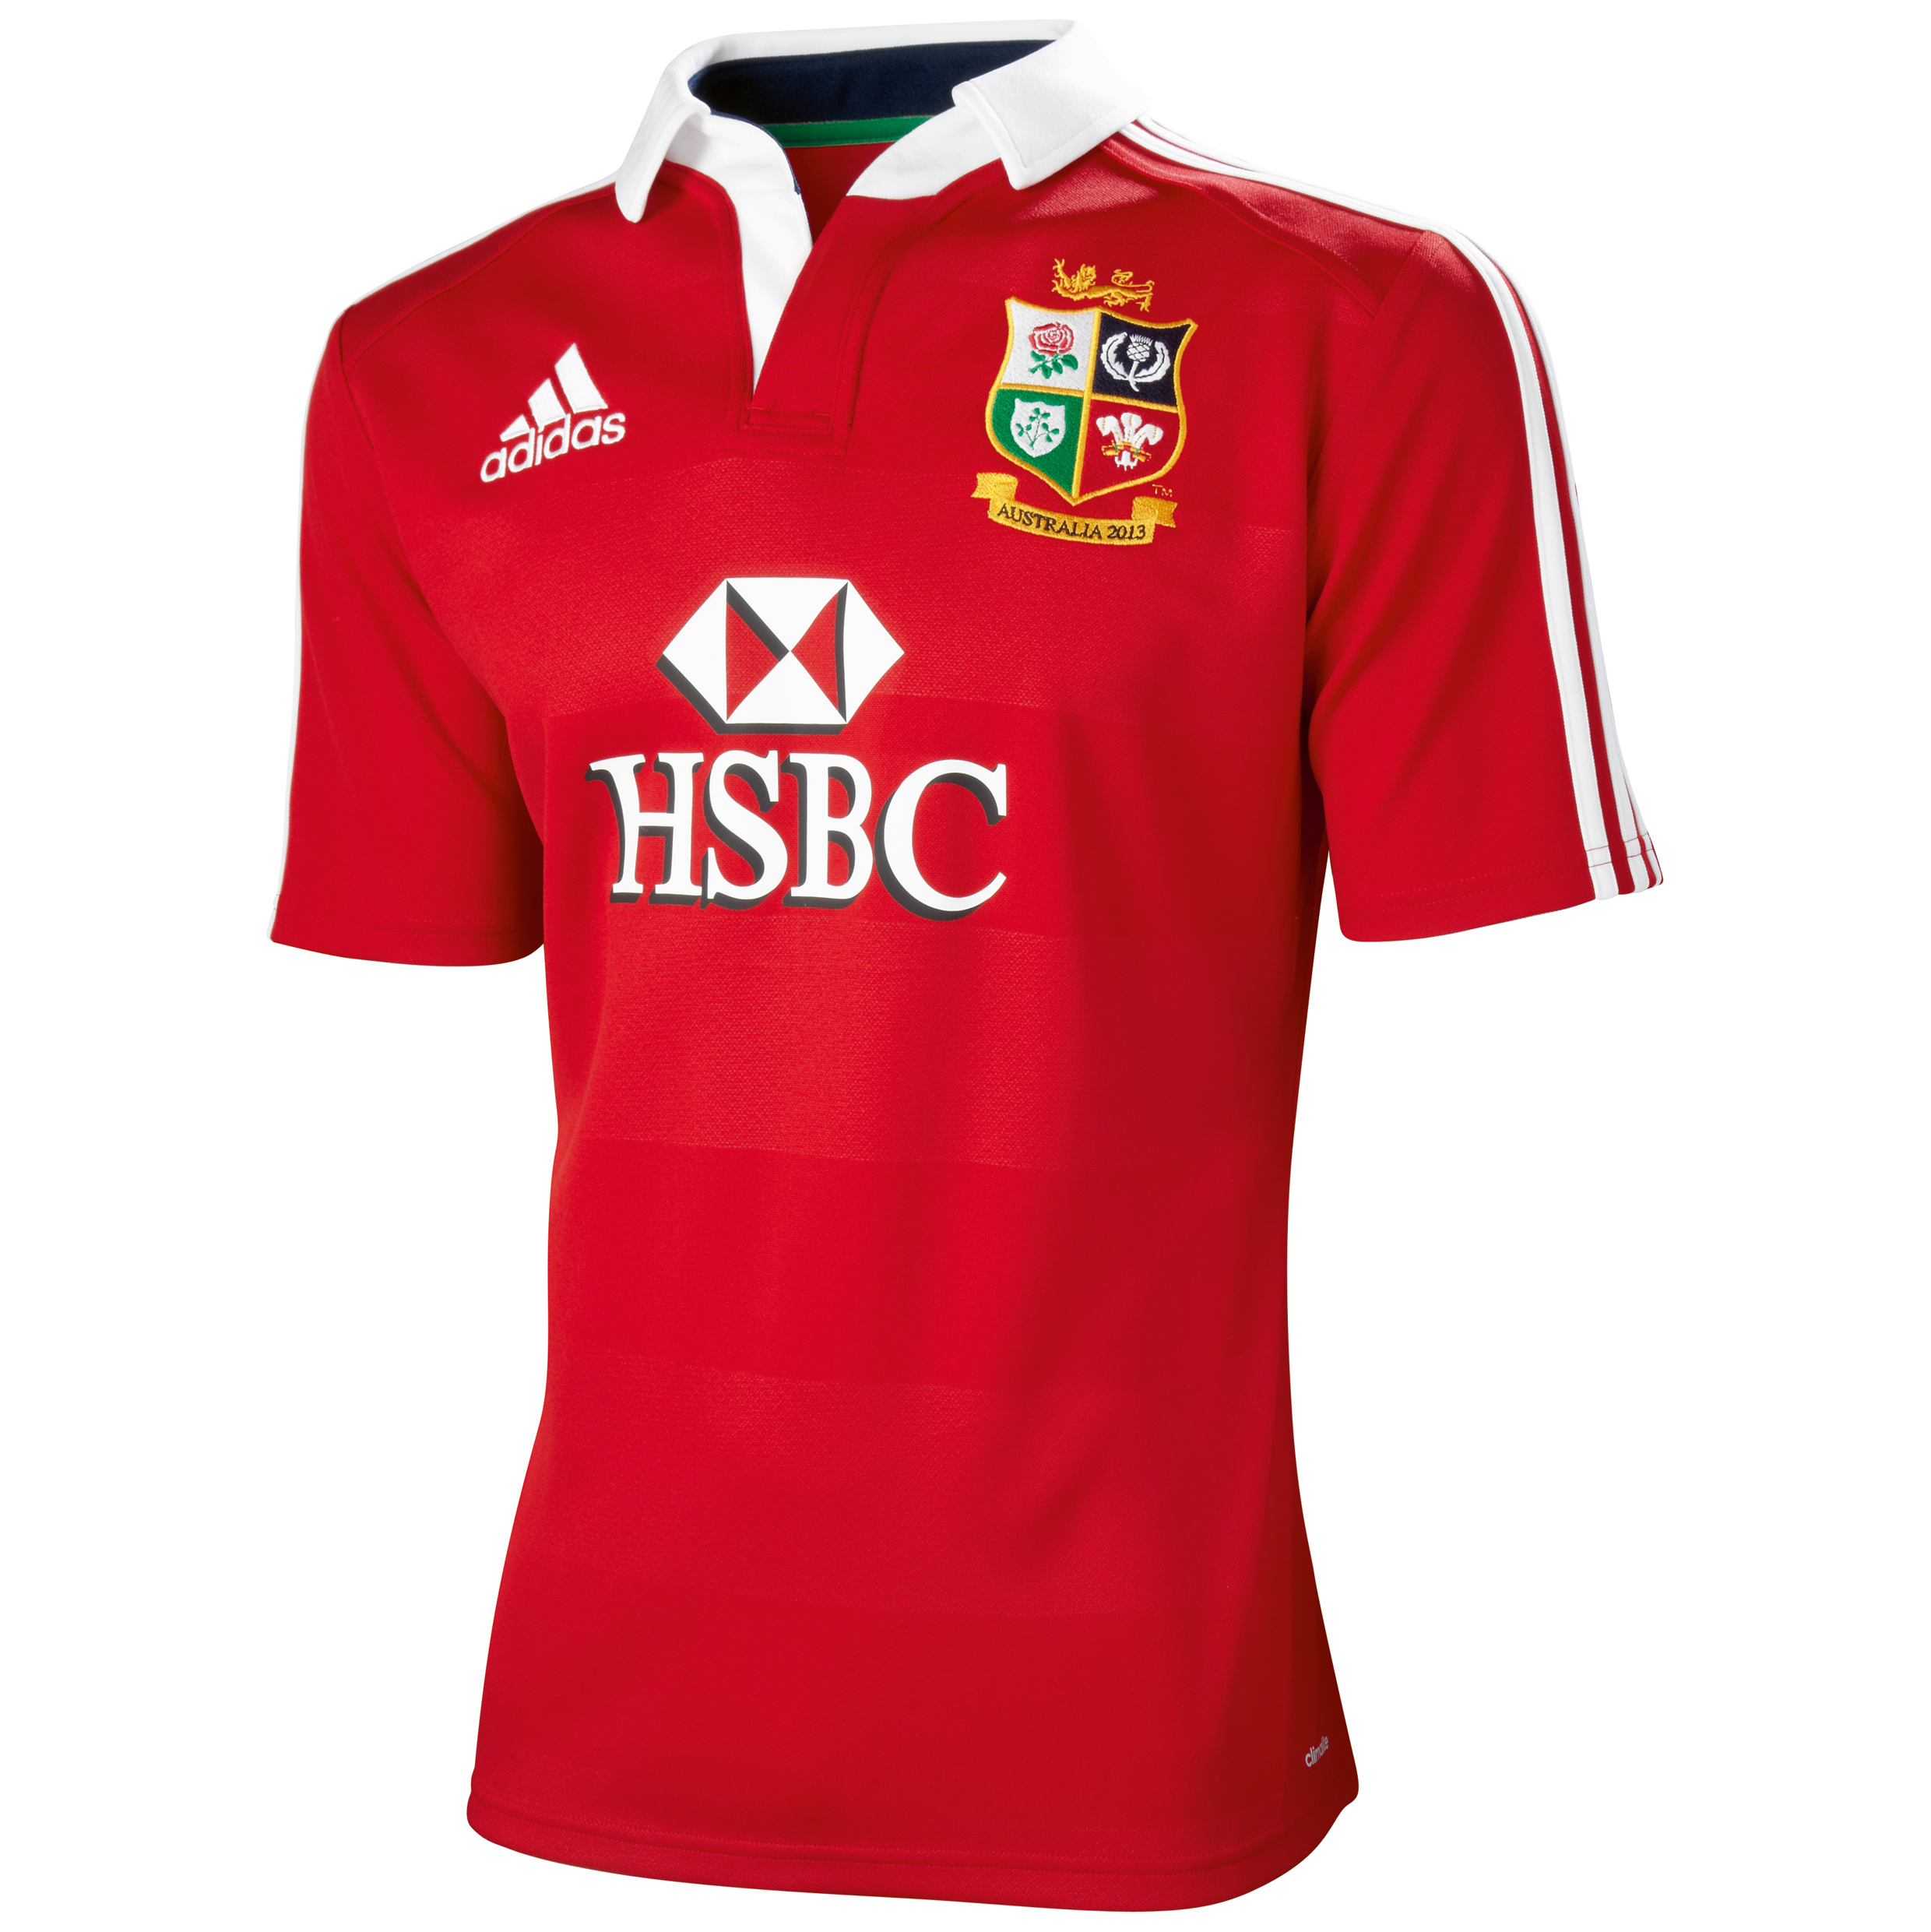 British & Irish Lions Home Shirt 2013